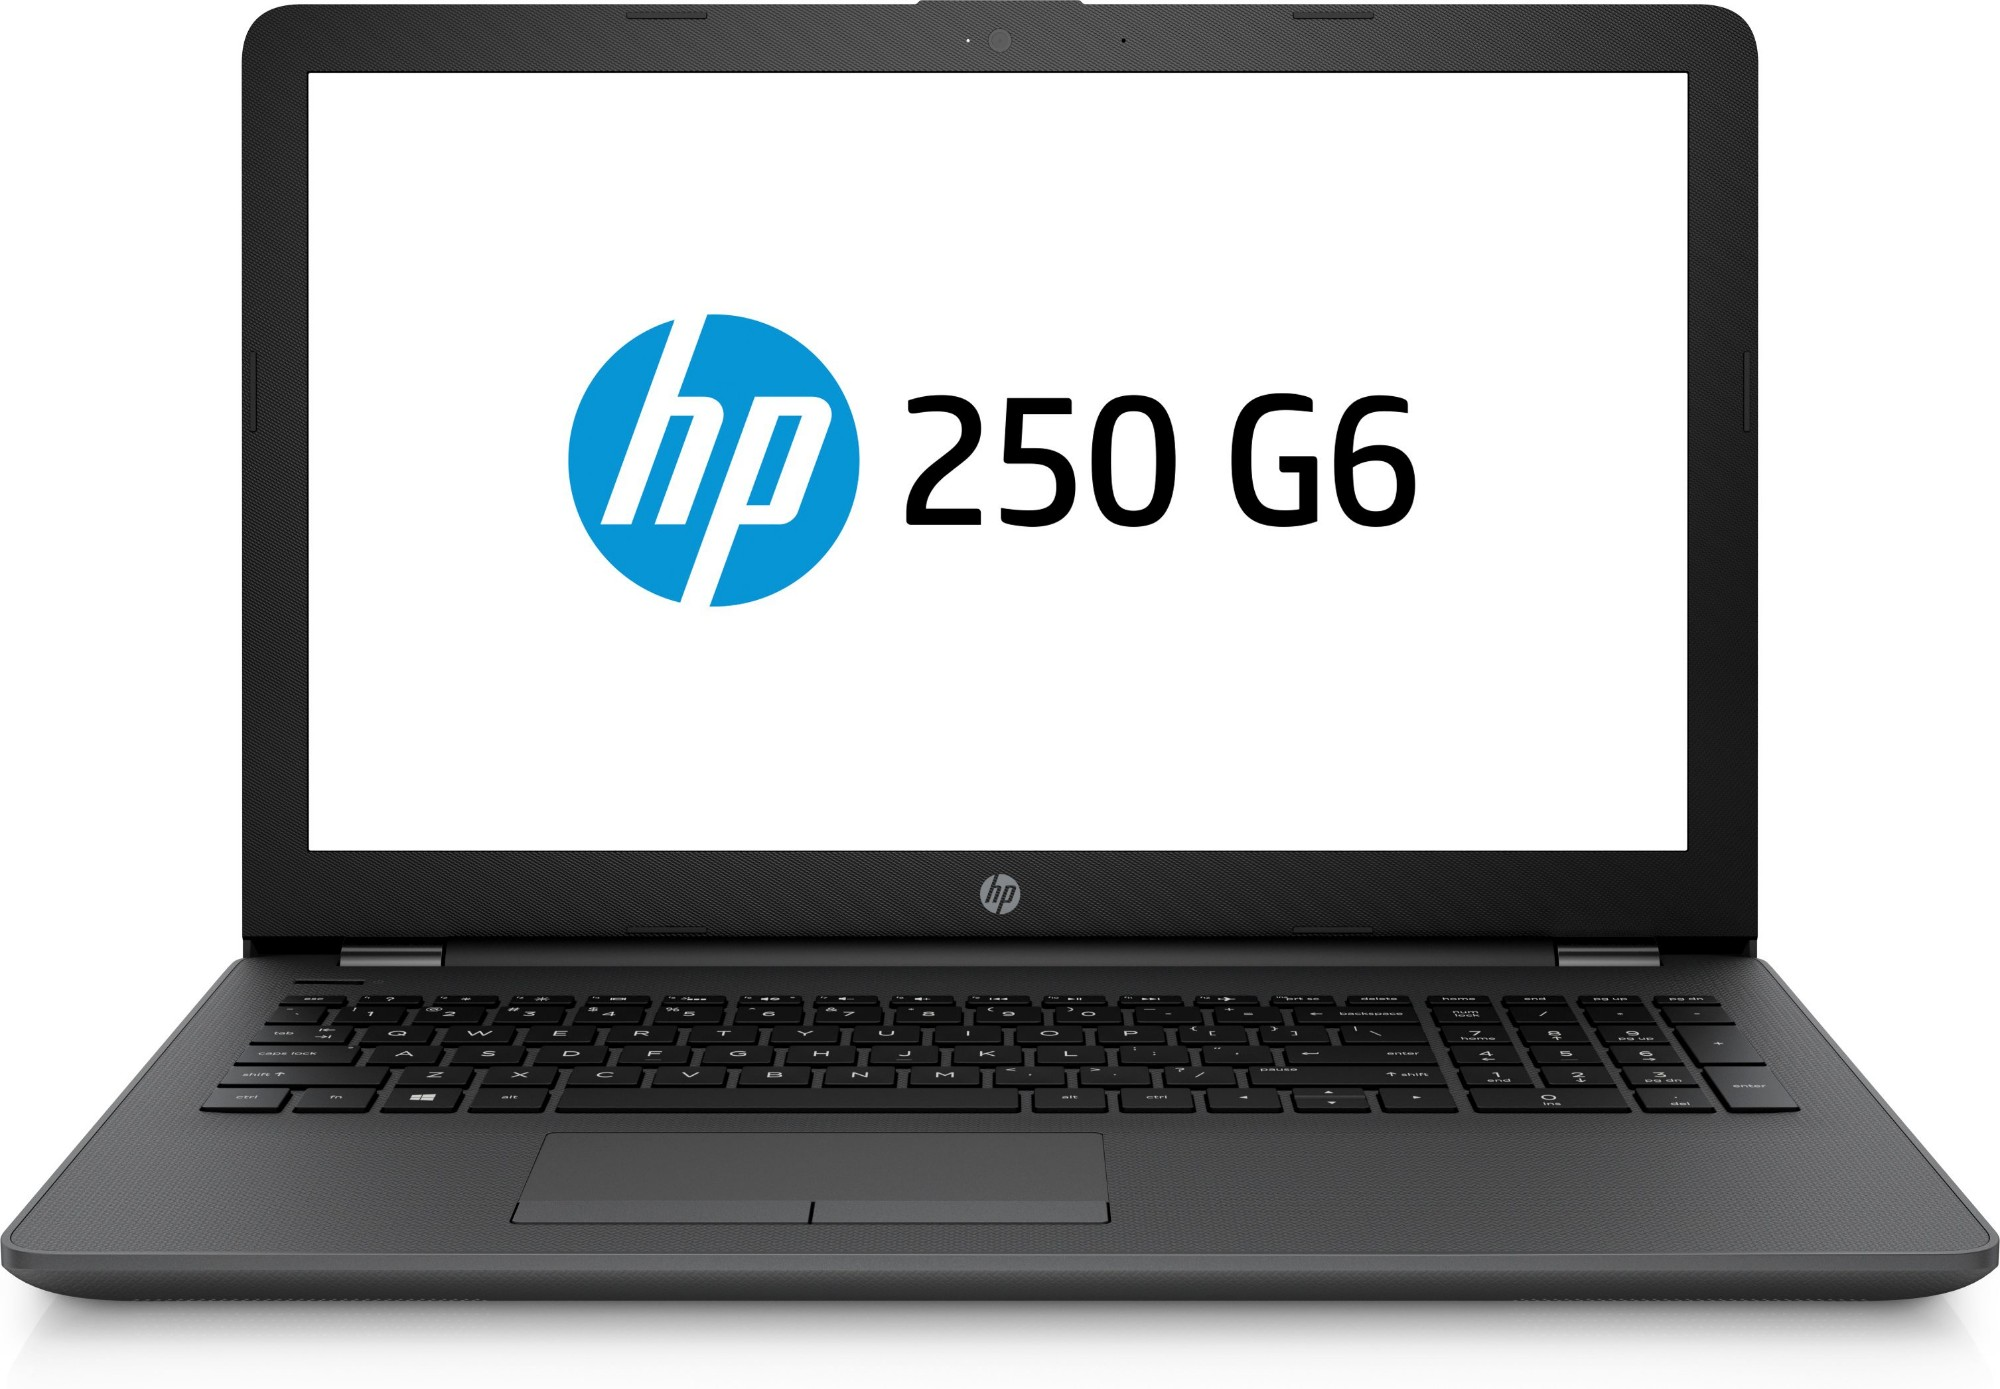 HP 250 G6 2 50GHz i5-7200U 7th gen Intel® Core™ i5 15 6